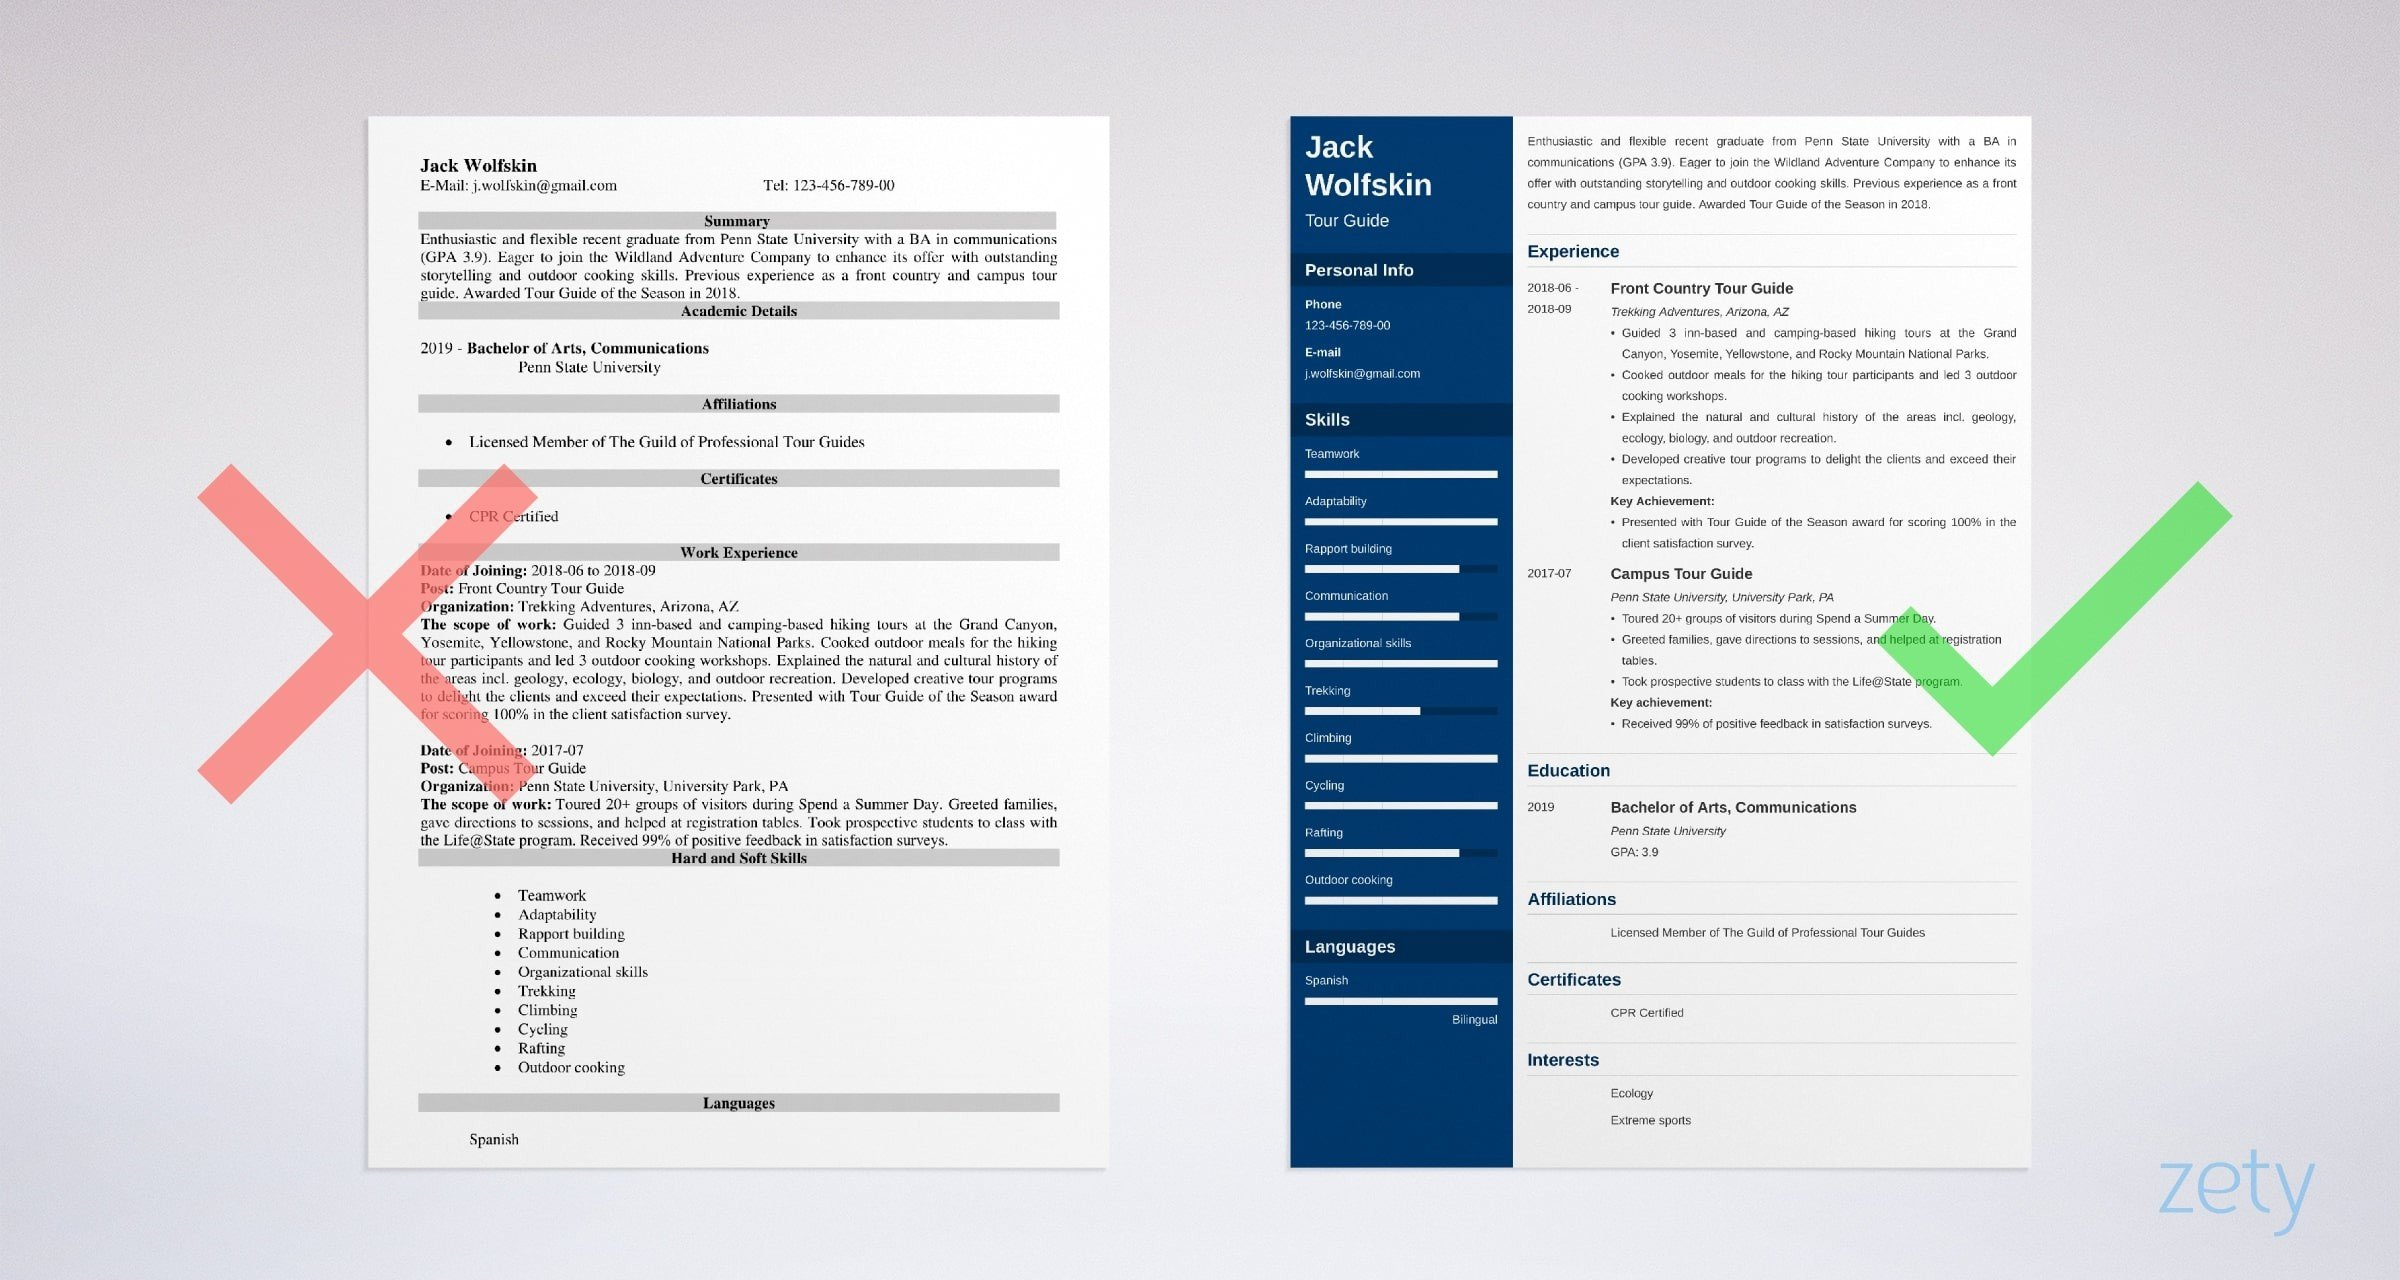 tour guide resume sample tips with job description travel and tourism examples example Resume Travel And Tourism Resume Examples